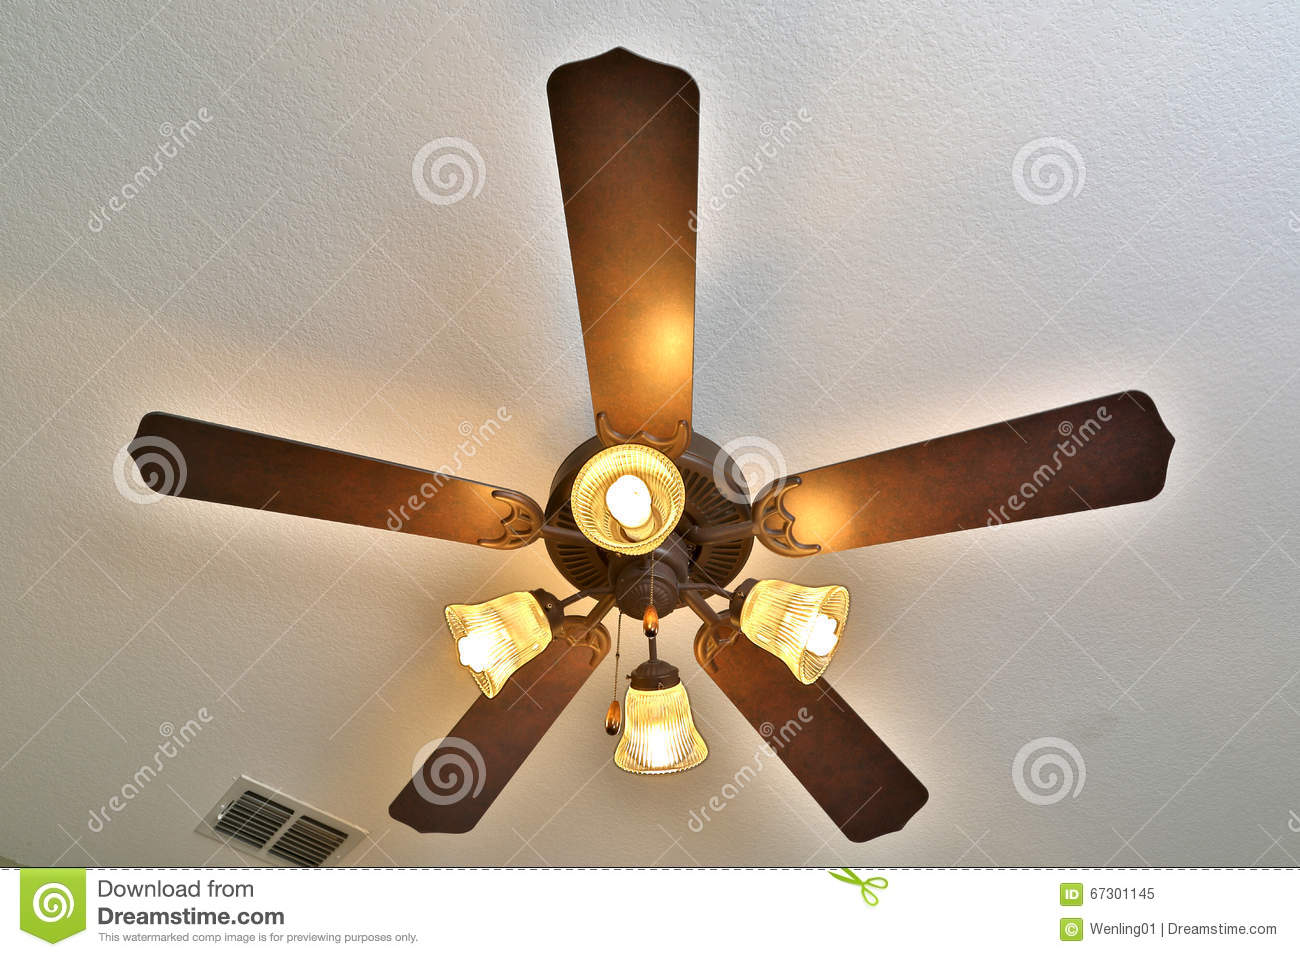 Ceiling fan with lights on